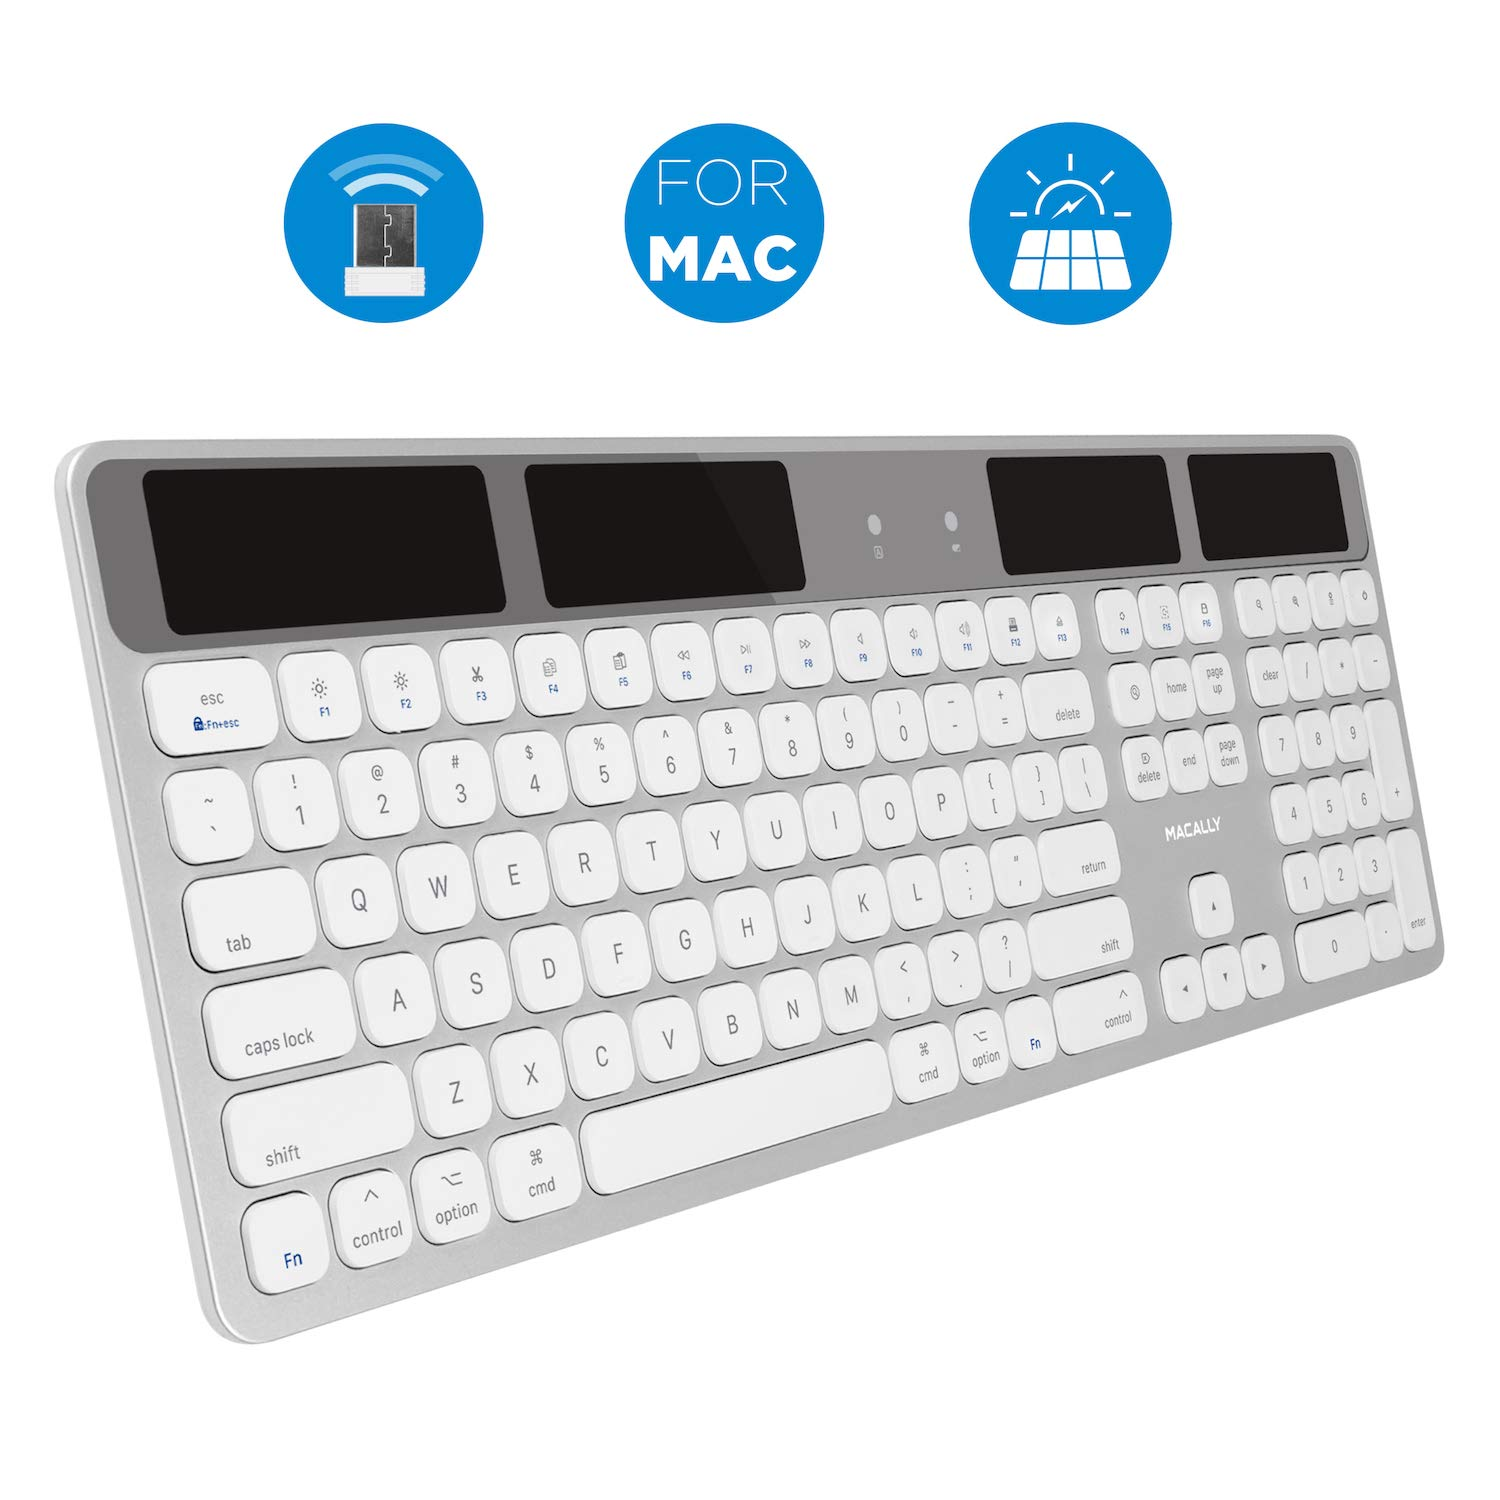 Macally Wireless Solar Keyboard for Mac Mini/Pro, iMac Desktop Computers & Apple MacBook Pro/Air Laptops | 2.4 Ghz RF USB Dongle | Caps Lock/Battery Indicators - Silver Aluminum, Gray by Macally (Image #11)